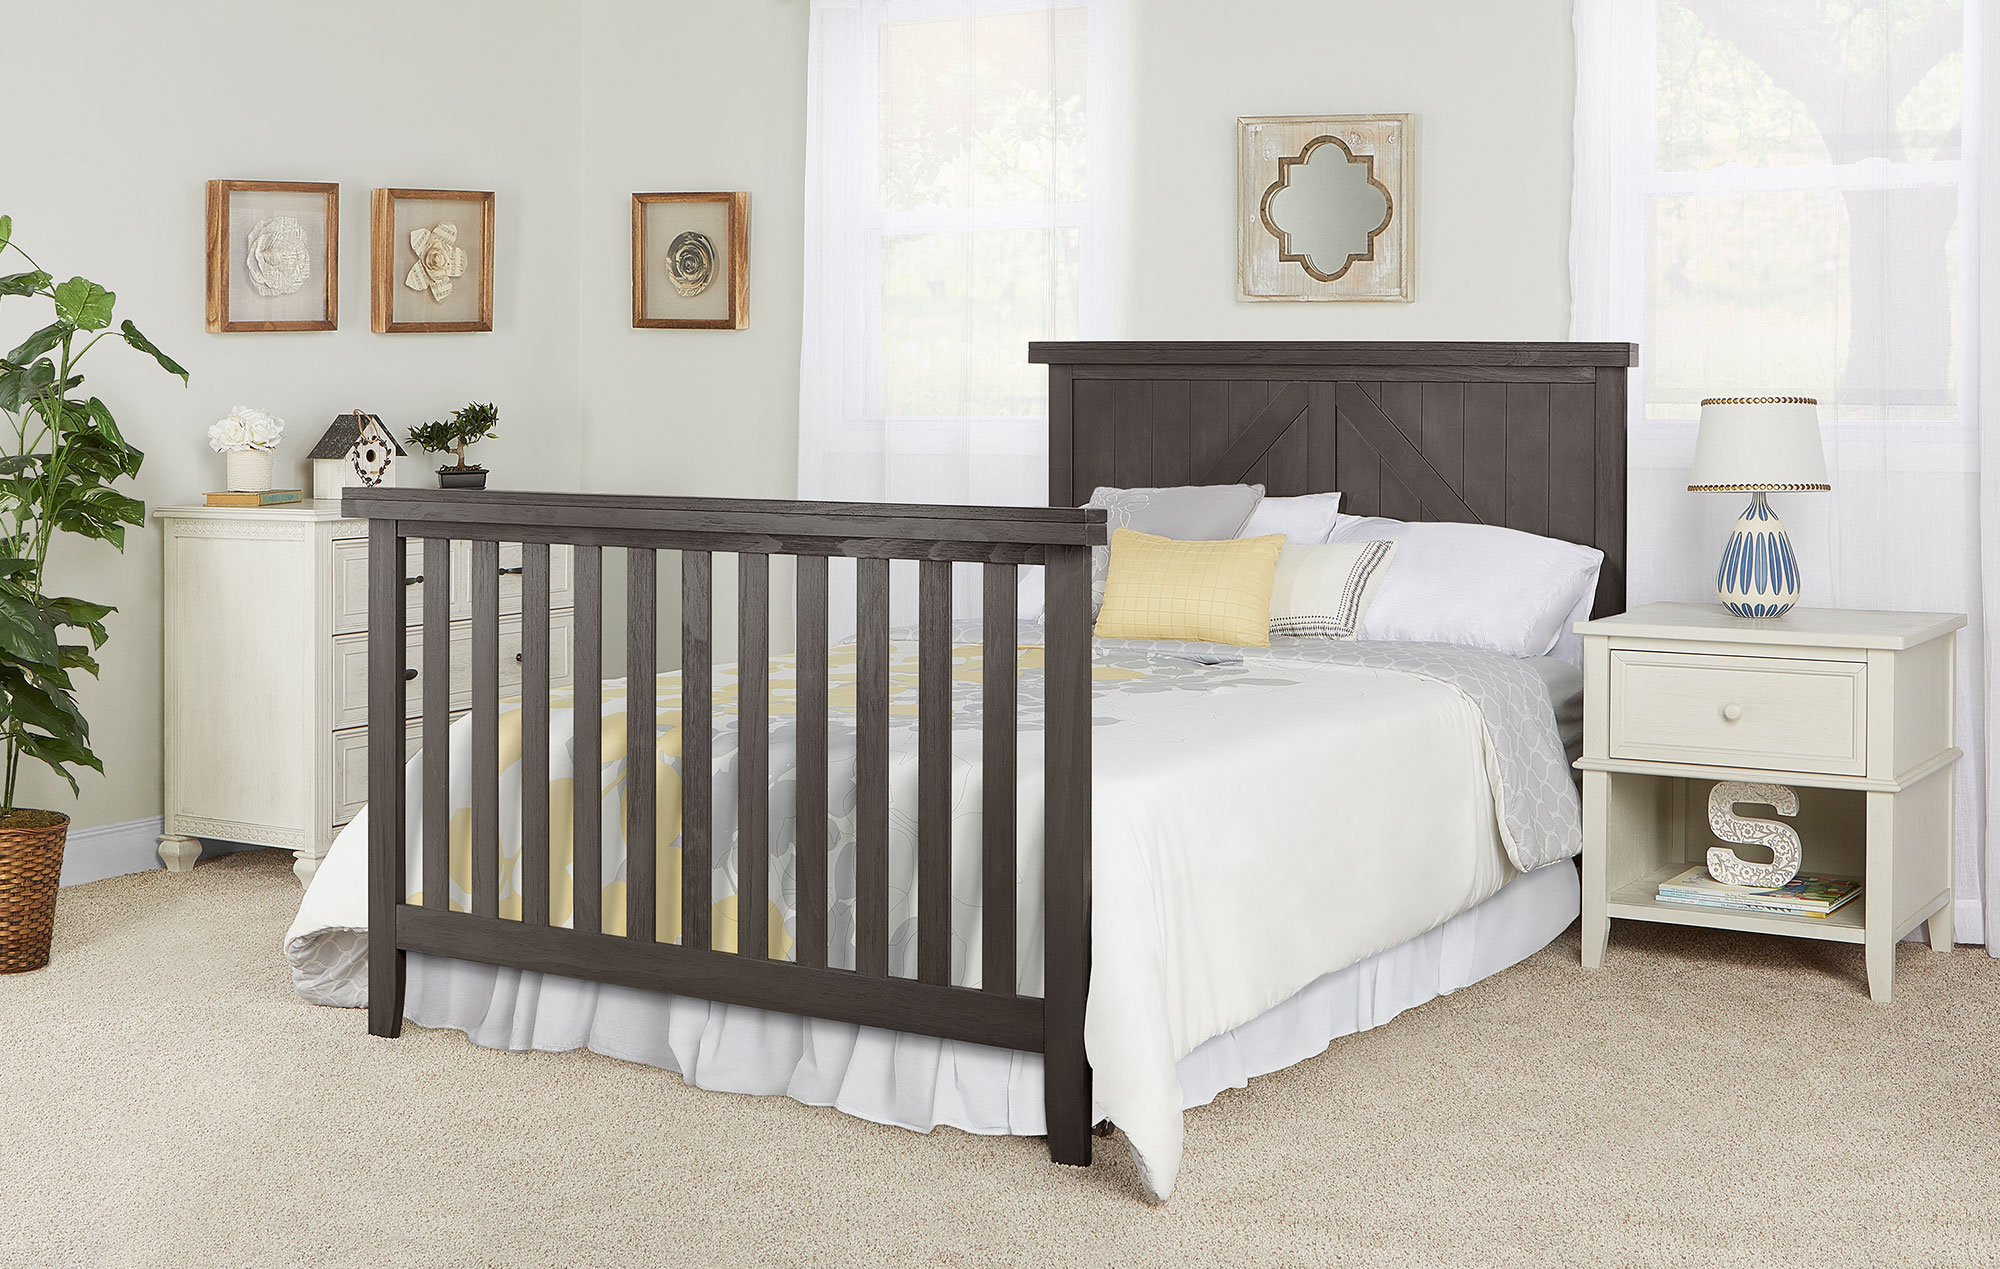 771-WGREY Olive Full Size Bed with Headboard Room Shot